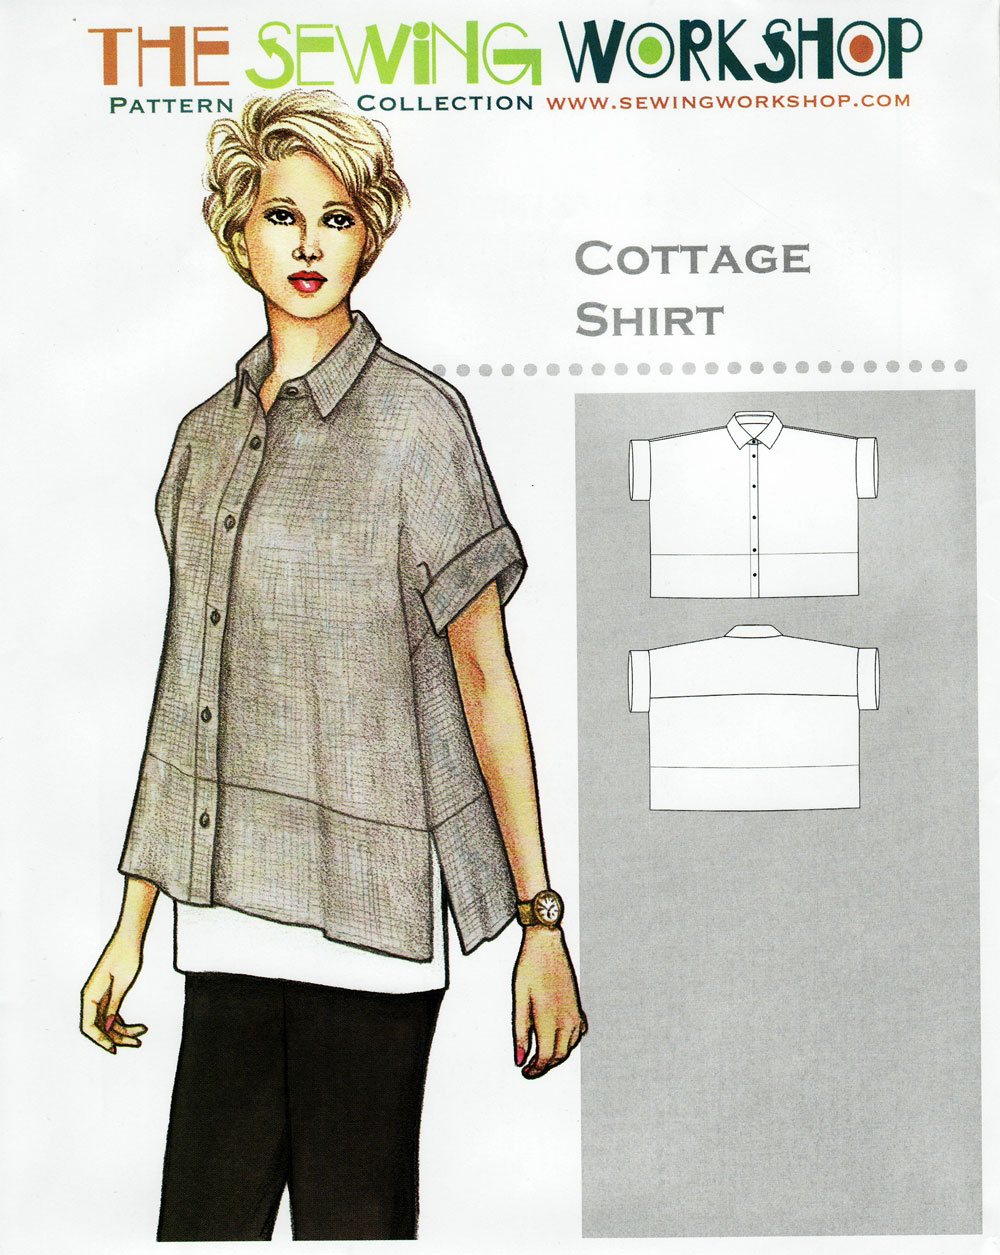 Cottage-Shirt-sewing-pattern-The-Sewing-Workshop-front